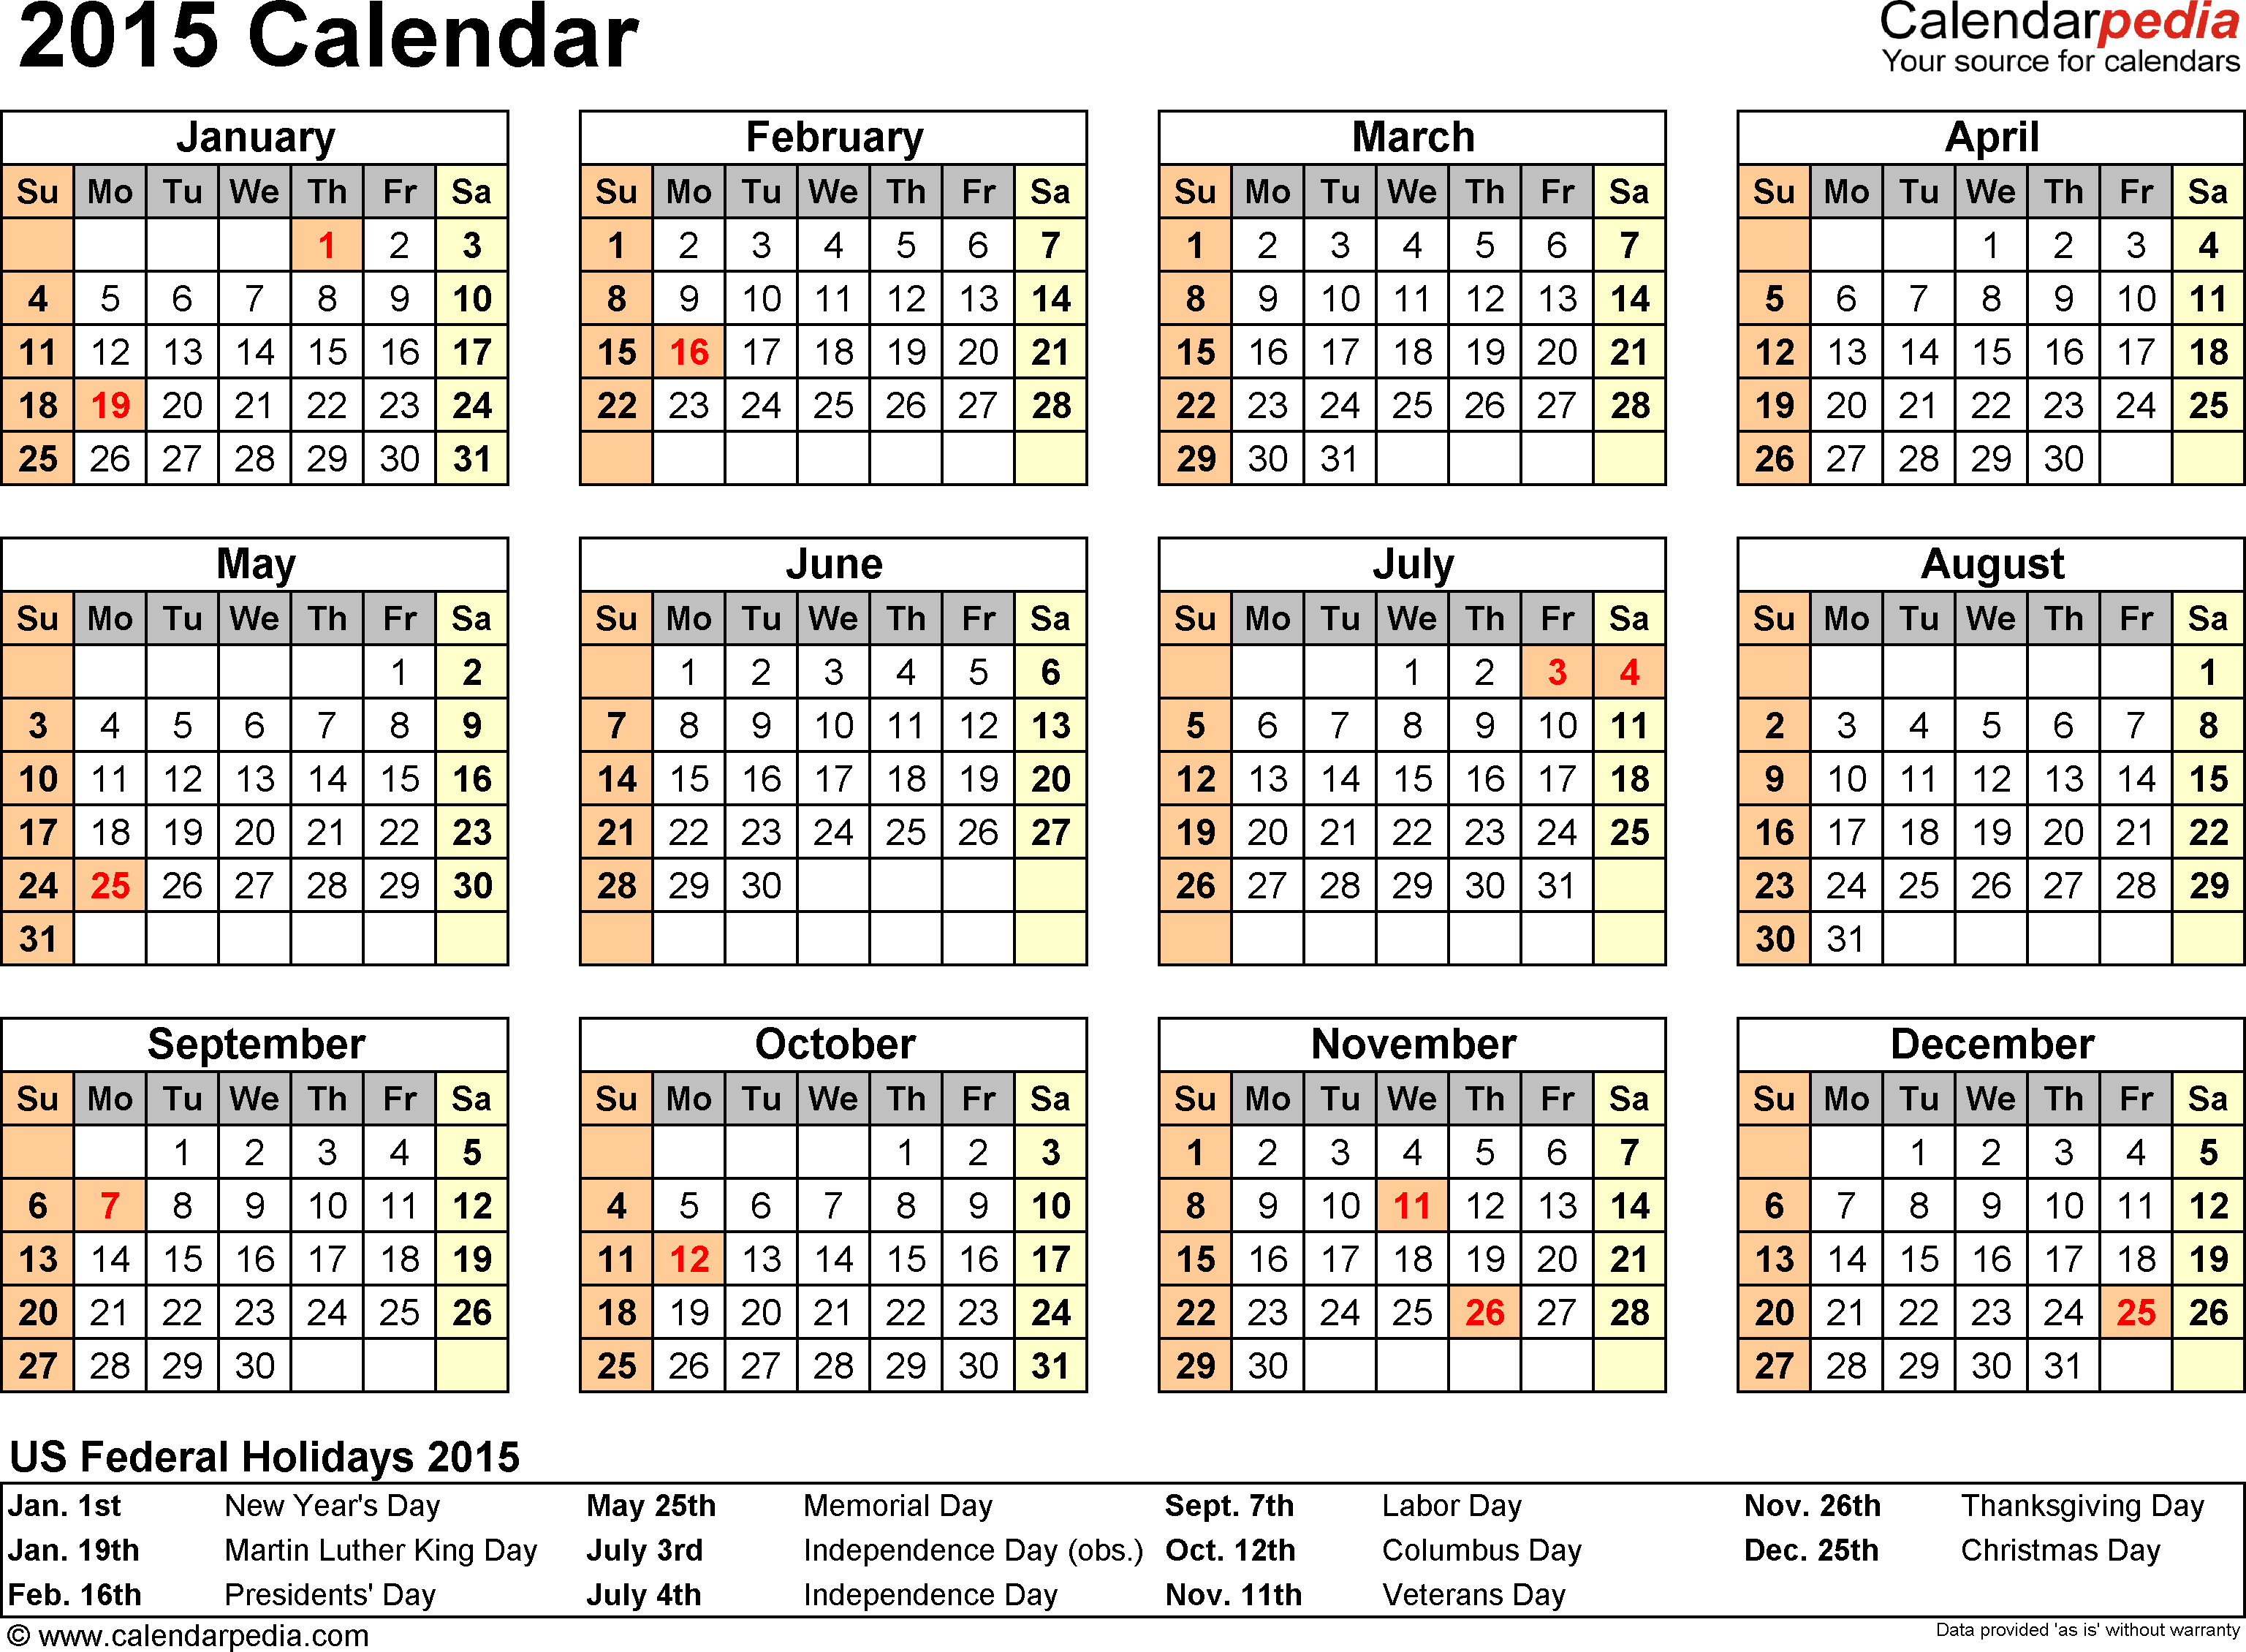 Download Excel template for 2015 calendar template 7: year overview, 1 page, with US federal holidays 2015, paper format: US letter